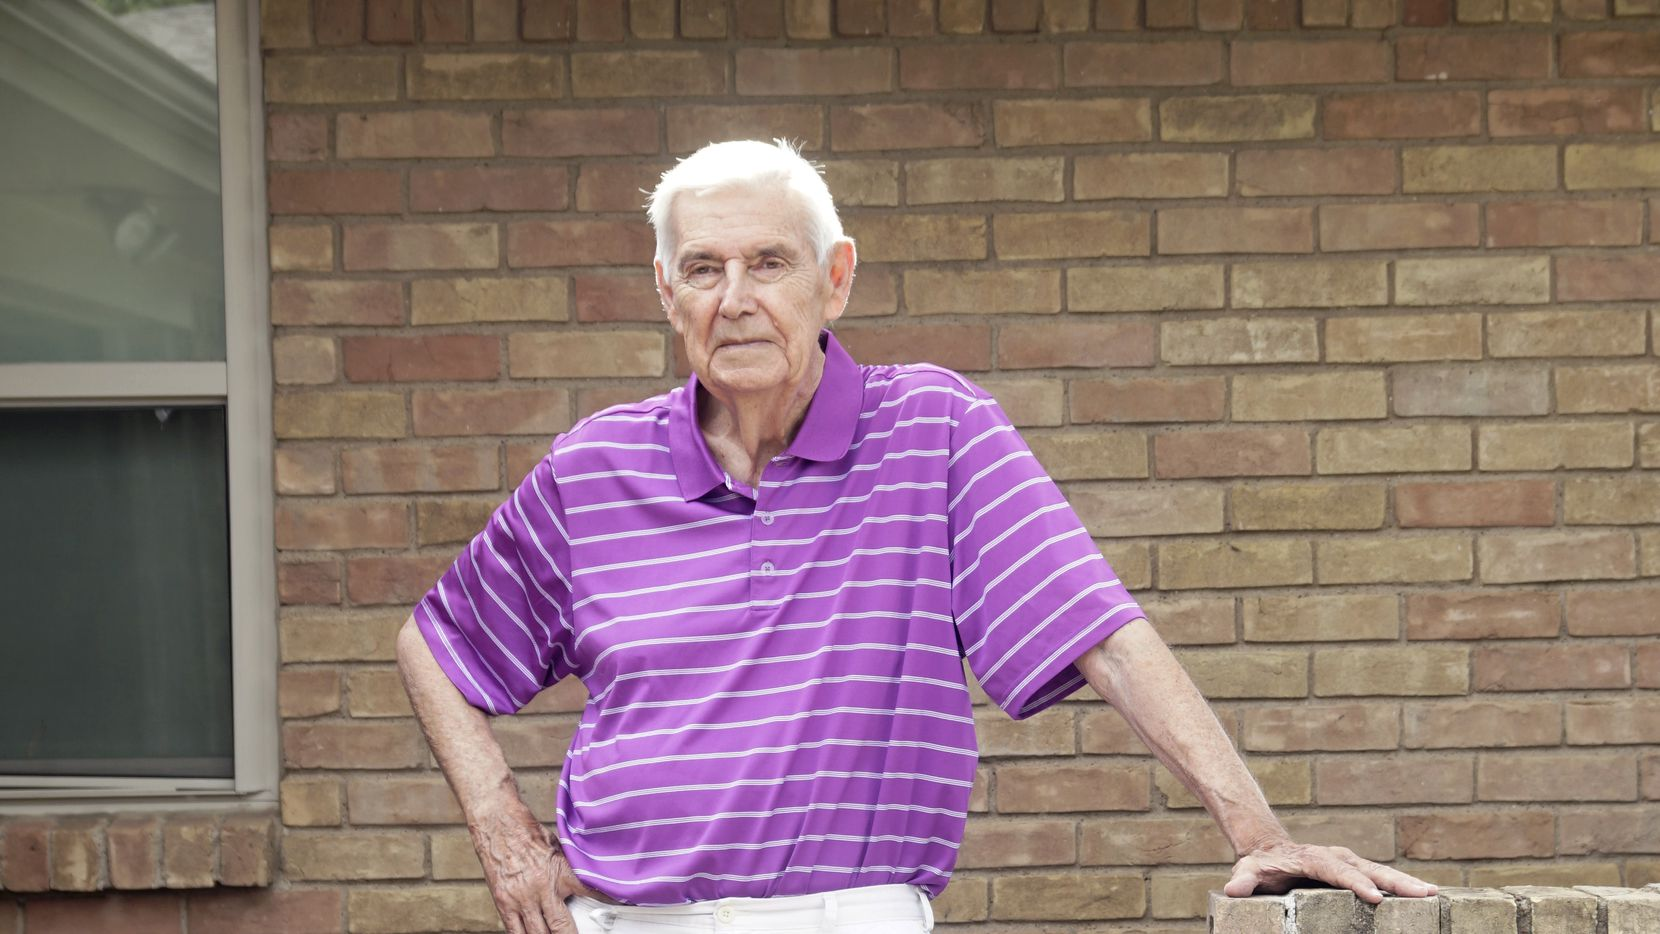 Don Nentwig, who broke his hip in a fall, had surgery the morning after his fracture and was standing that afternoon. He is part of the Returning Seniors to Orthopedic Excellence program.